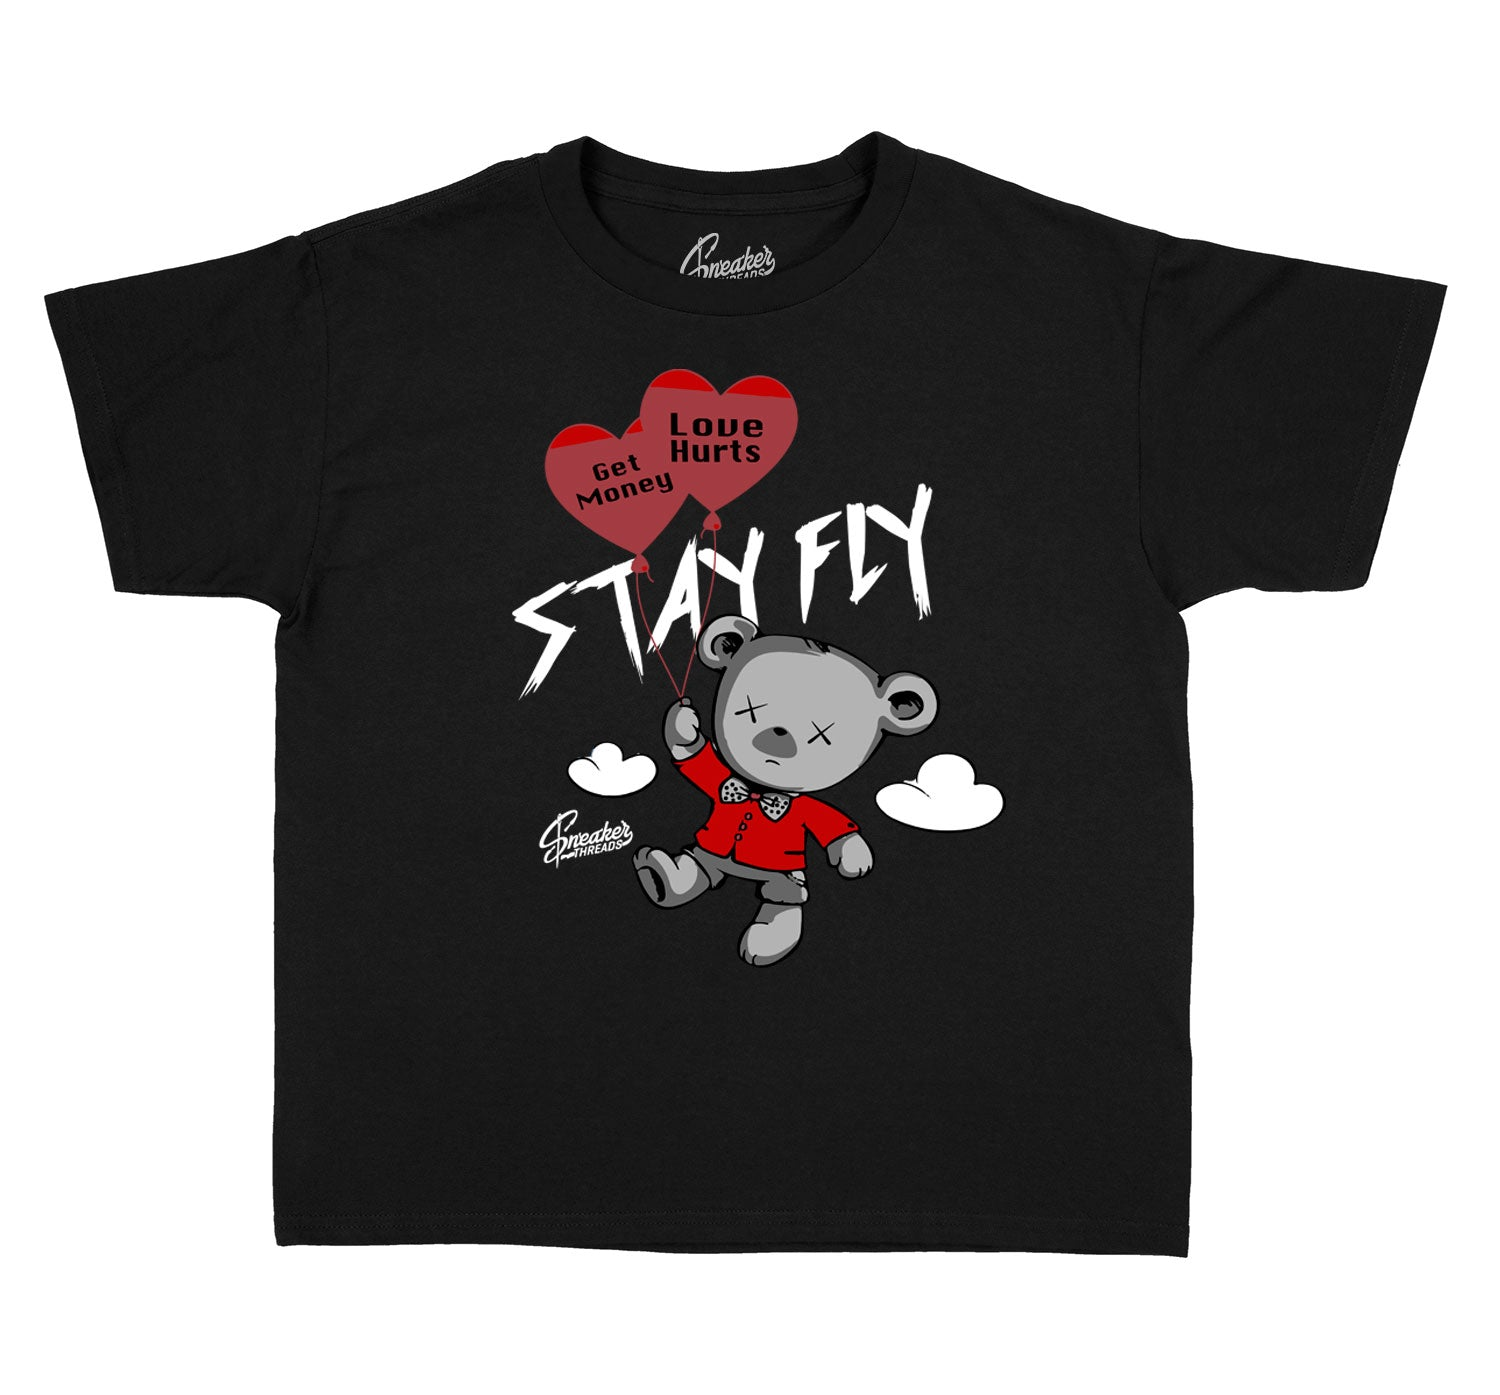 Kids - Carmine 6 Money Over Love Shirt